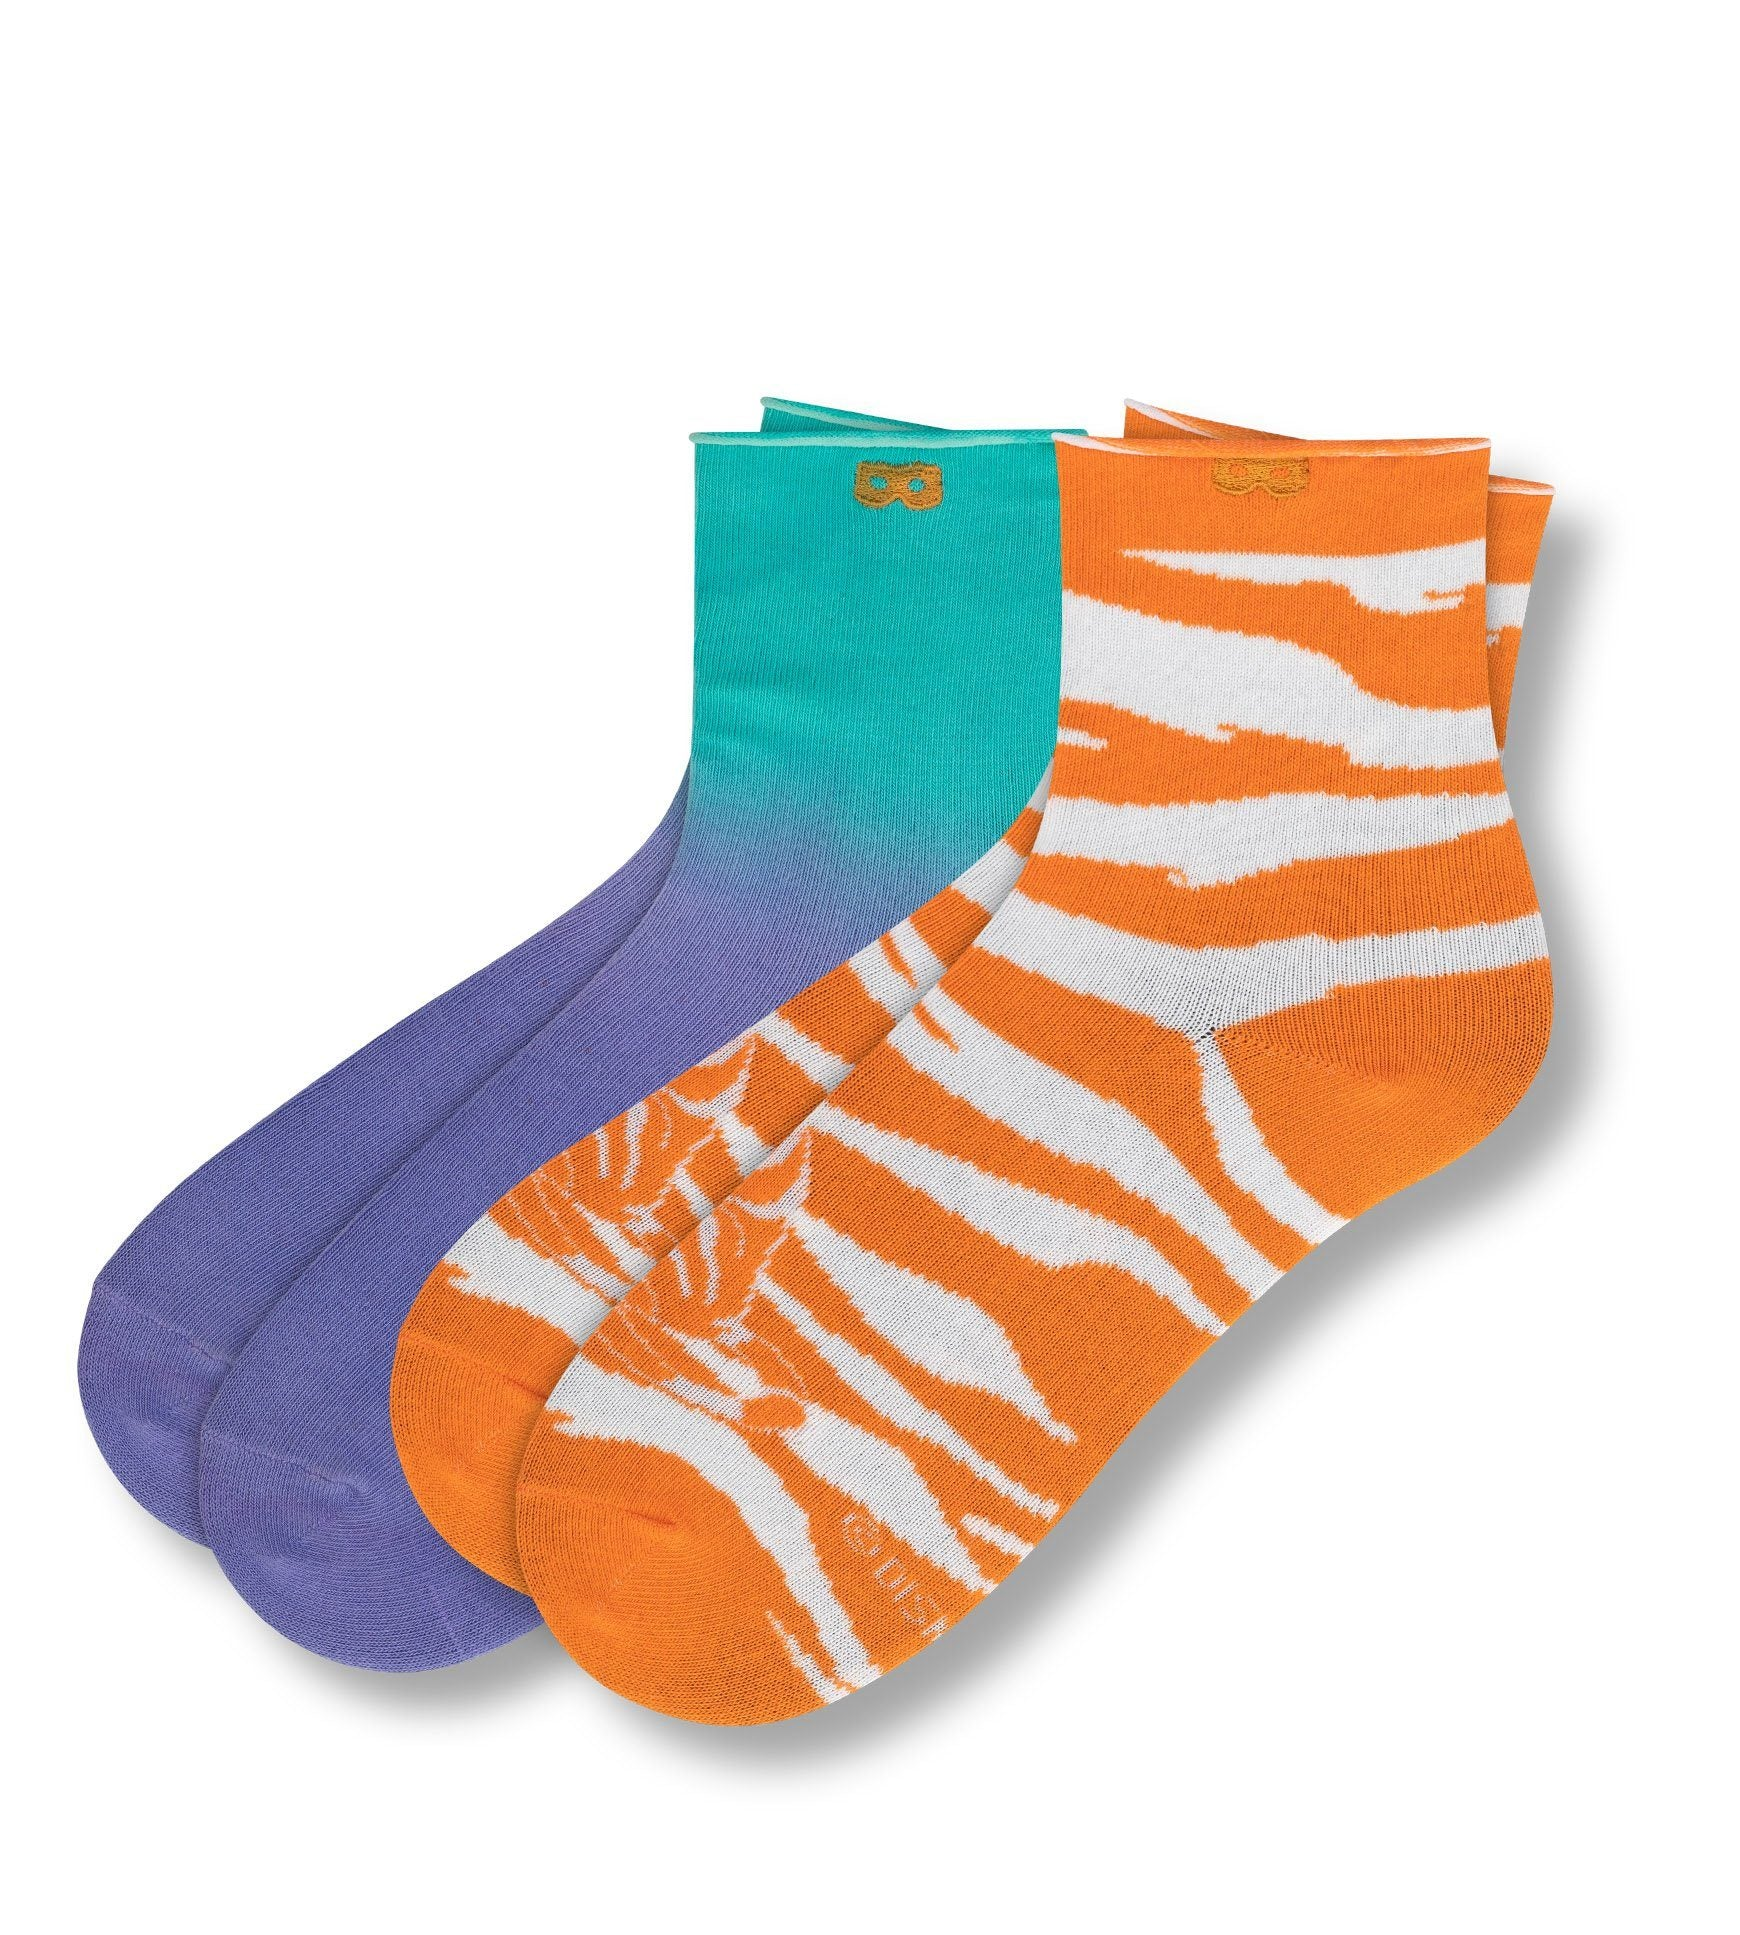 Aladdin Whole New World Women's 2 Pack Ankle Sock